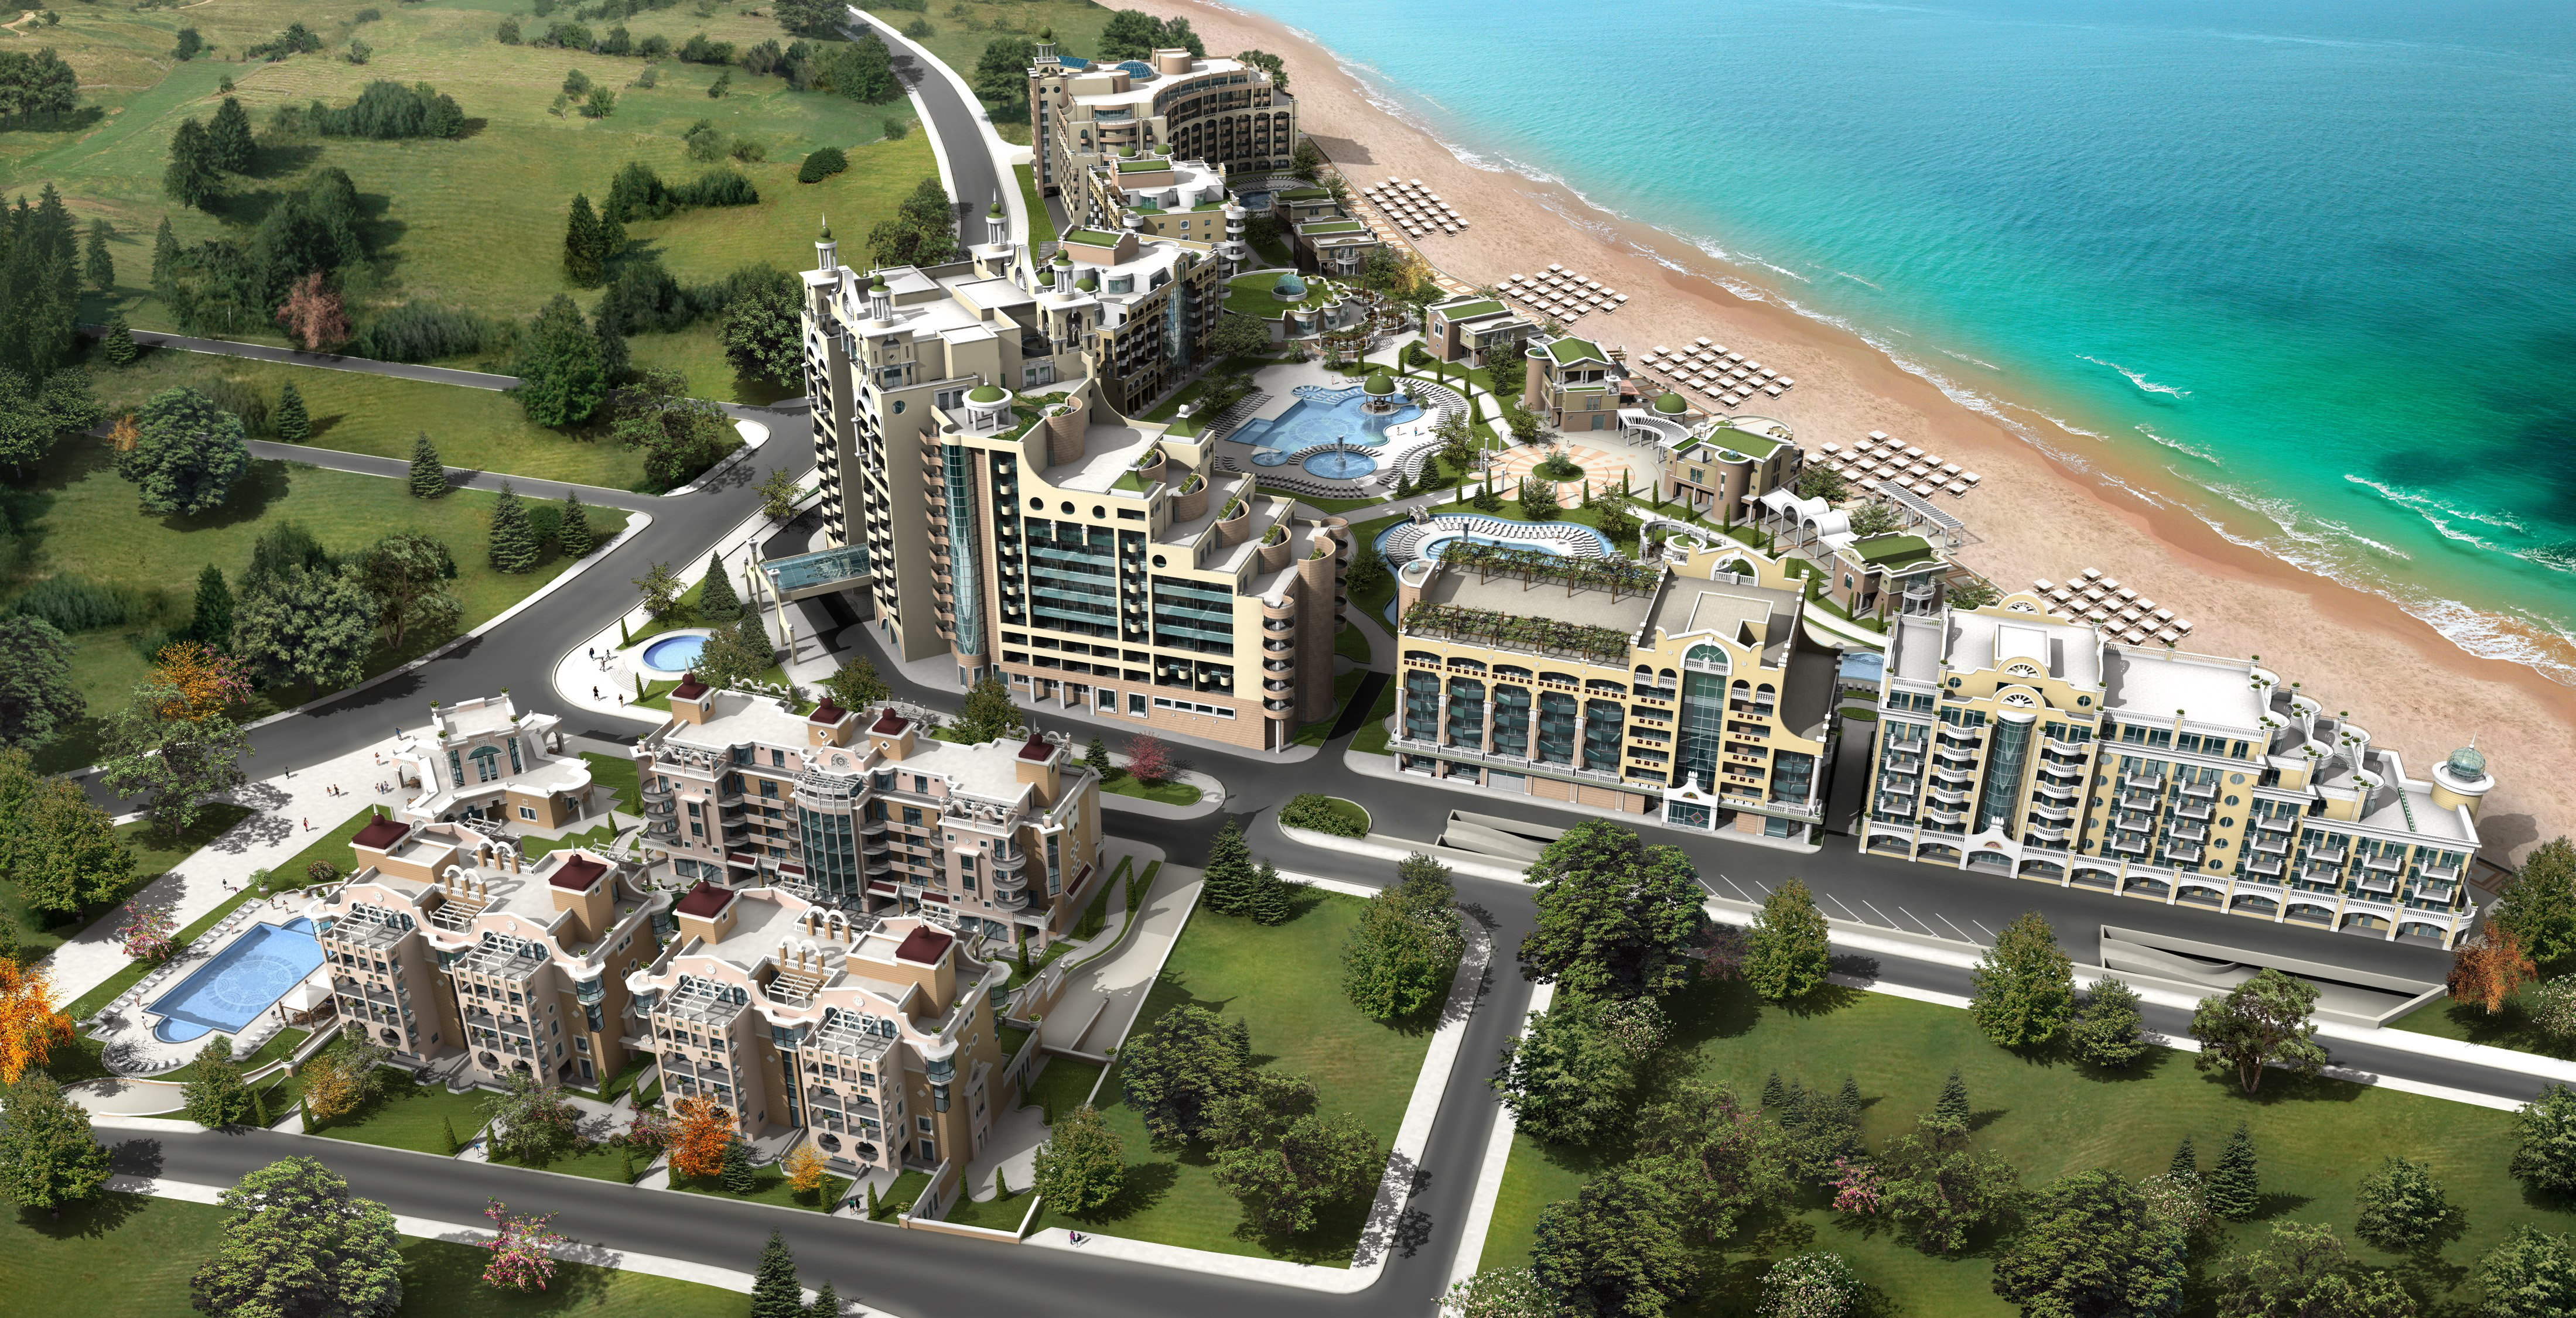 Sunset resort phase 2 presented by lngroup management ltd Sunset lodge